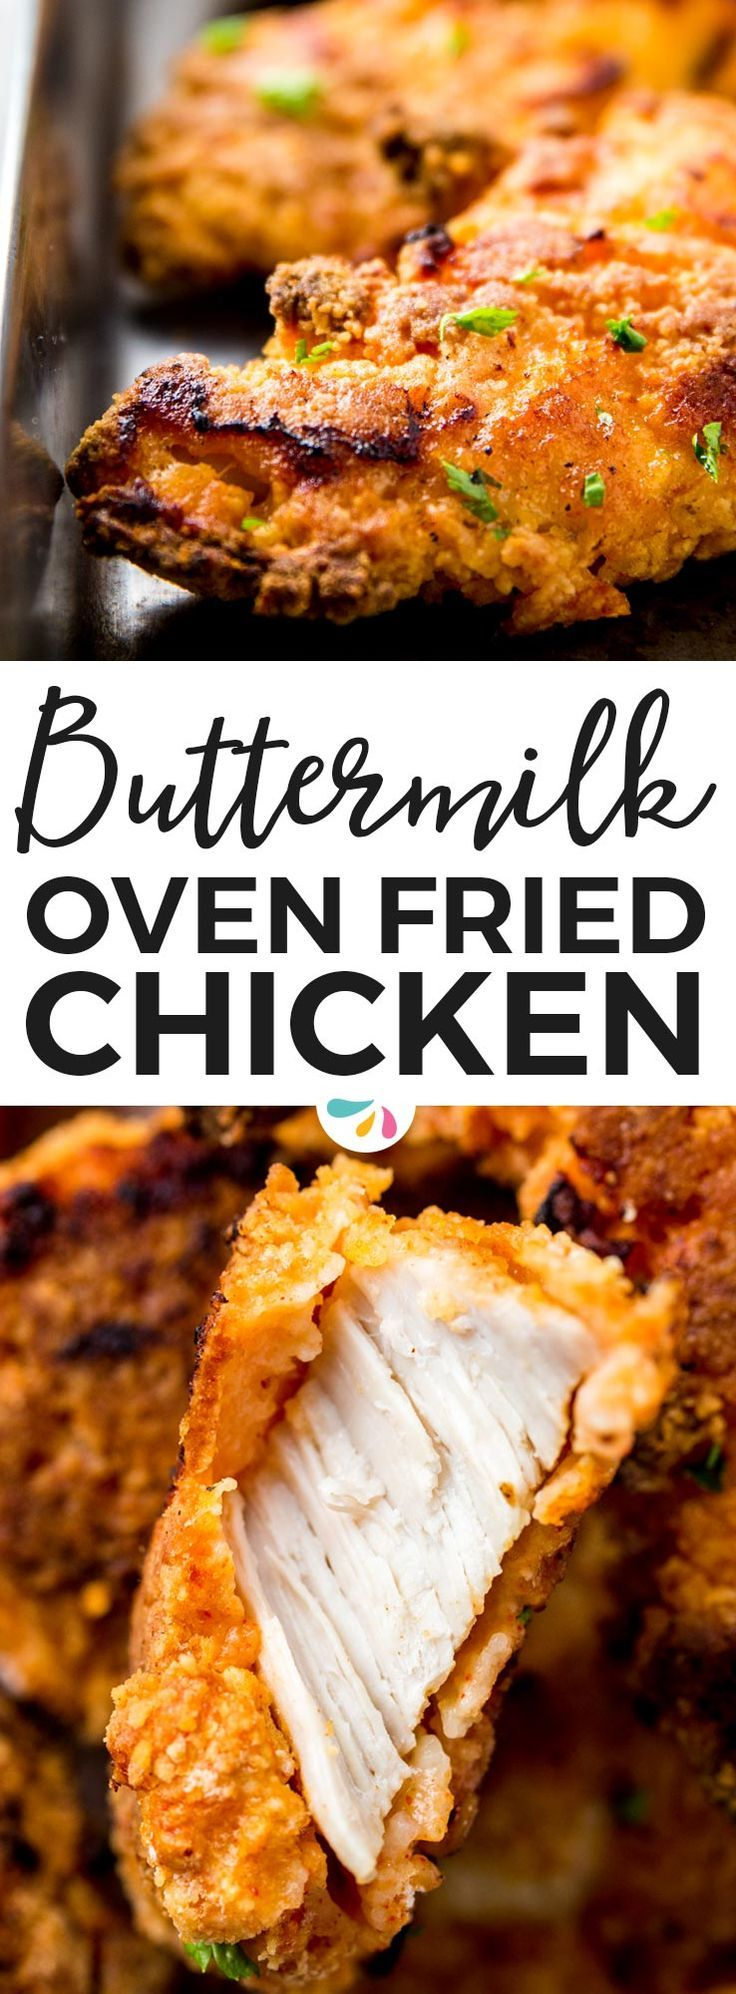 The BEST Crispy Buttermilk Oven Fried Chicken: You won't be disappointed by this recipe! Made using a simple technique, this chicken gets so crispy in the oven - it's hard to believe it isn't deep fried! It's easy to make and way less messy than the traditional way - no greasy stove to clean! This is the healthy way to indulge in crispy fried chicken, a great dinner everyone will love. Works with tenders, chicken breast or even wings and drumsticks. |#recipes #easydinner #easyrecipes…